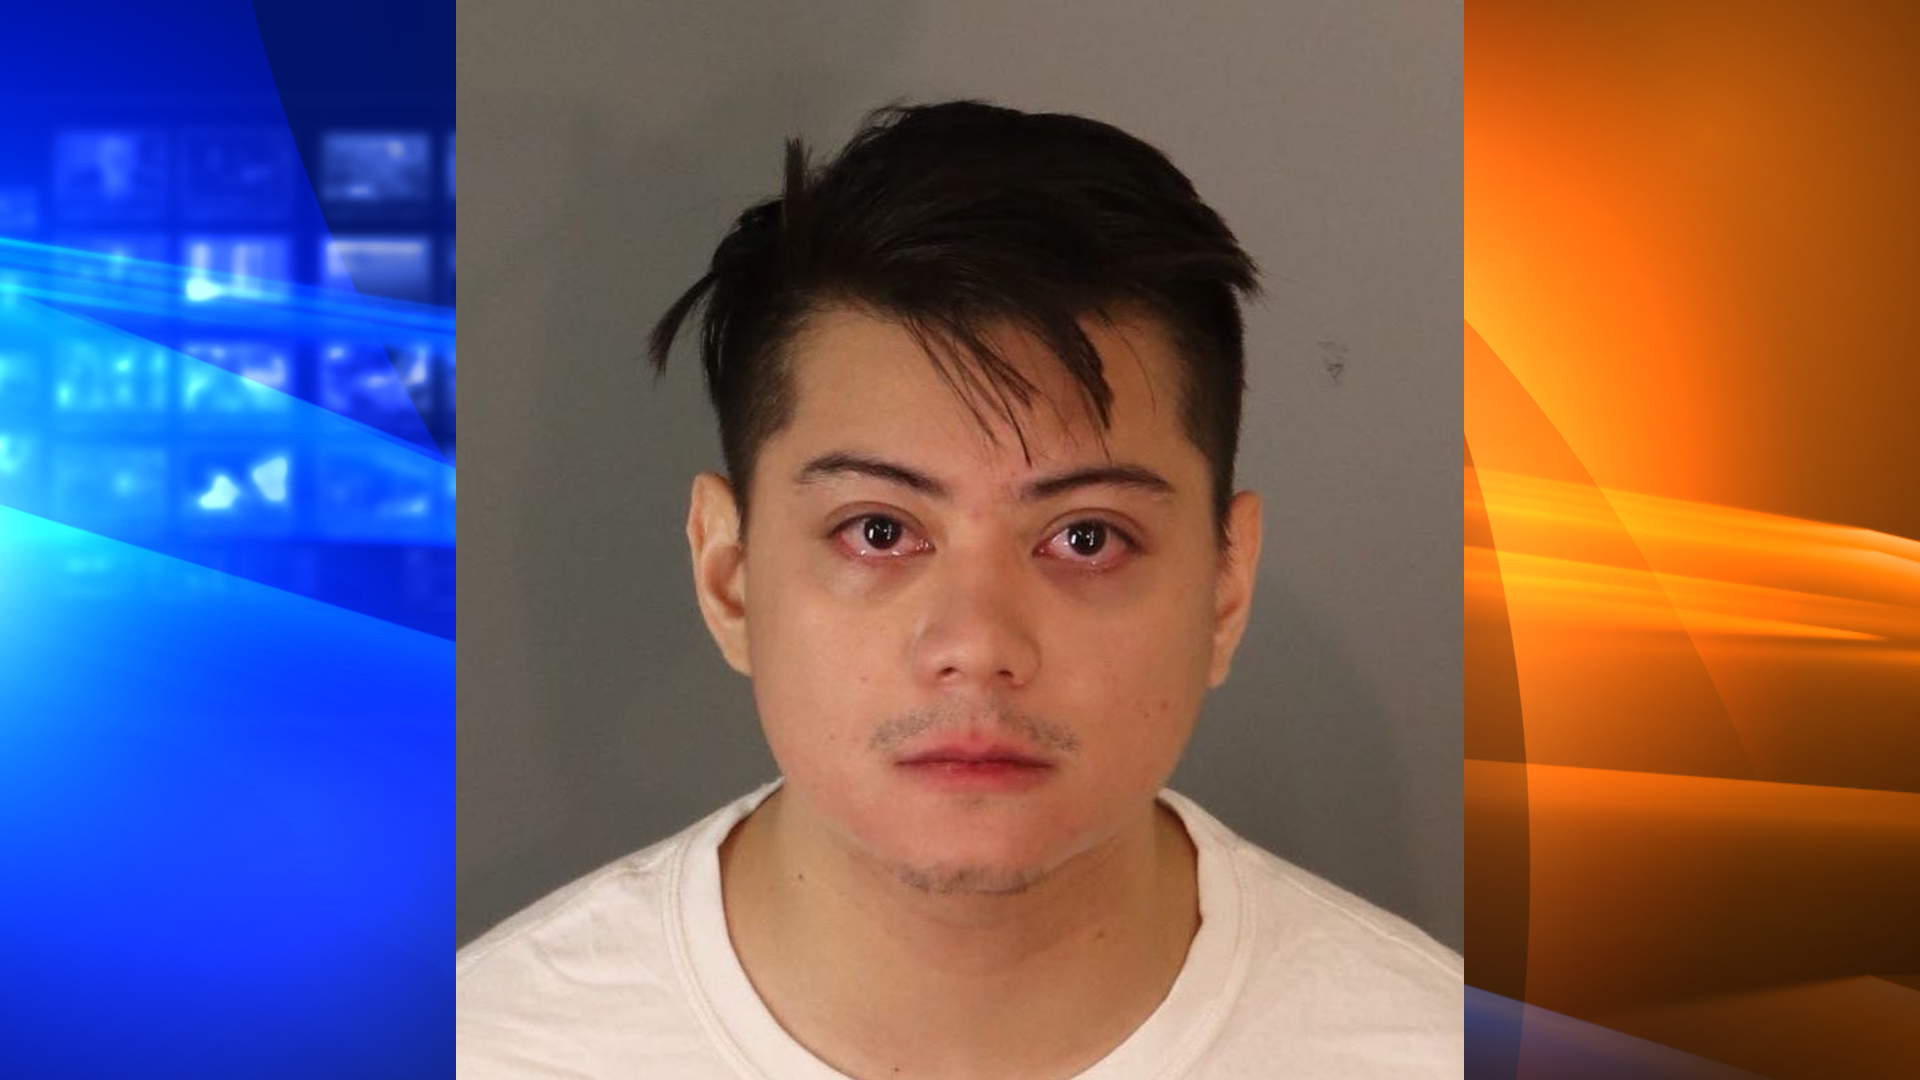 Miguel Bolanos was arrested on Aug. 17, 2021, by the Riverside Police Department and charged with multiple counts of sexual assault. (Riverside Police Department)